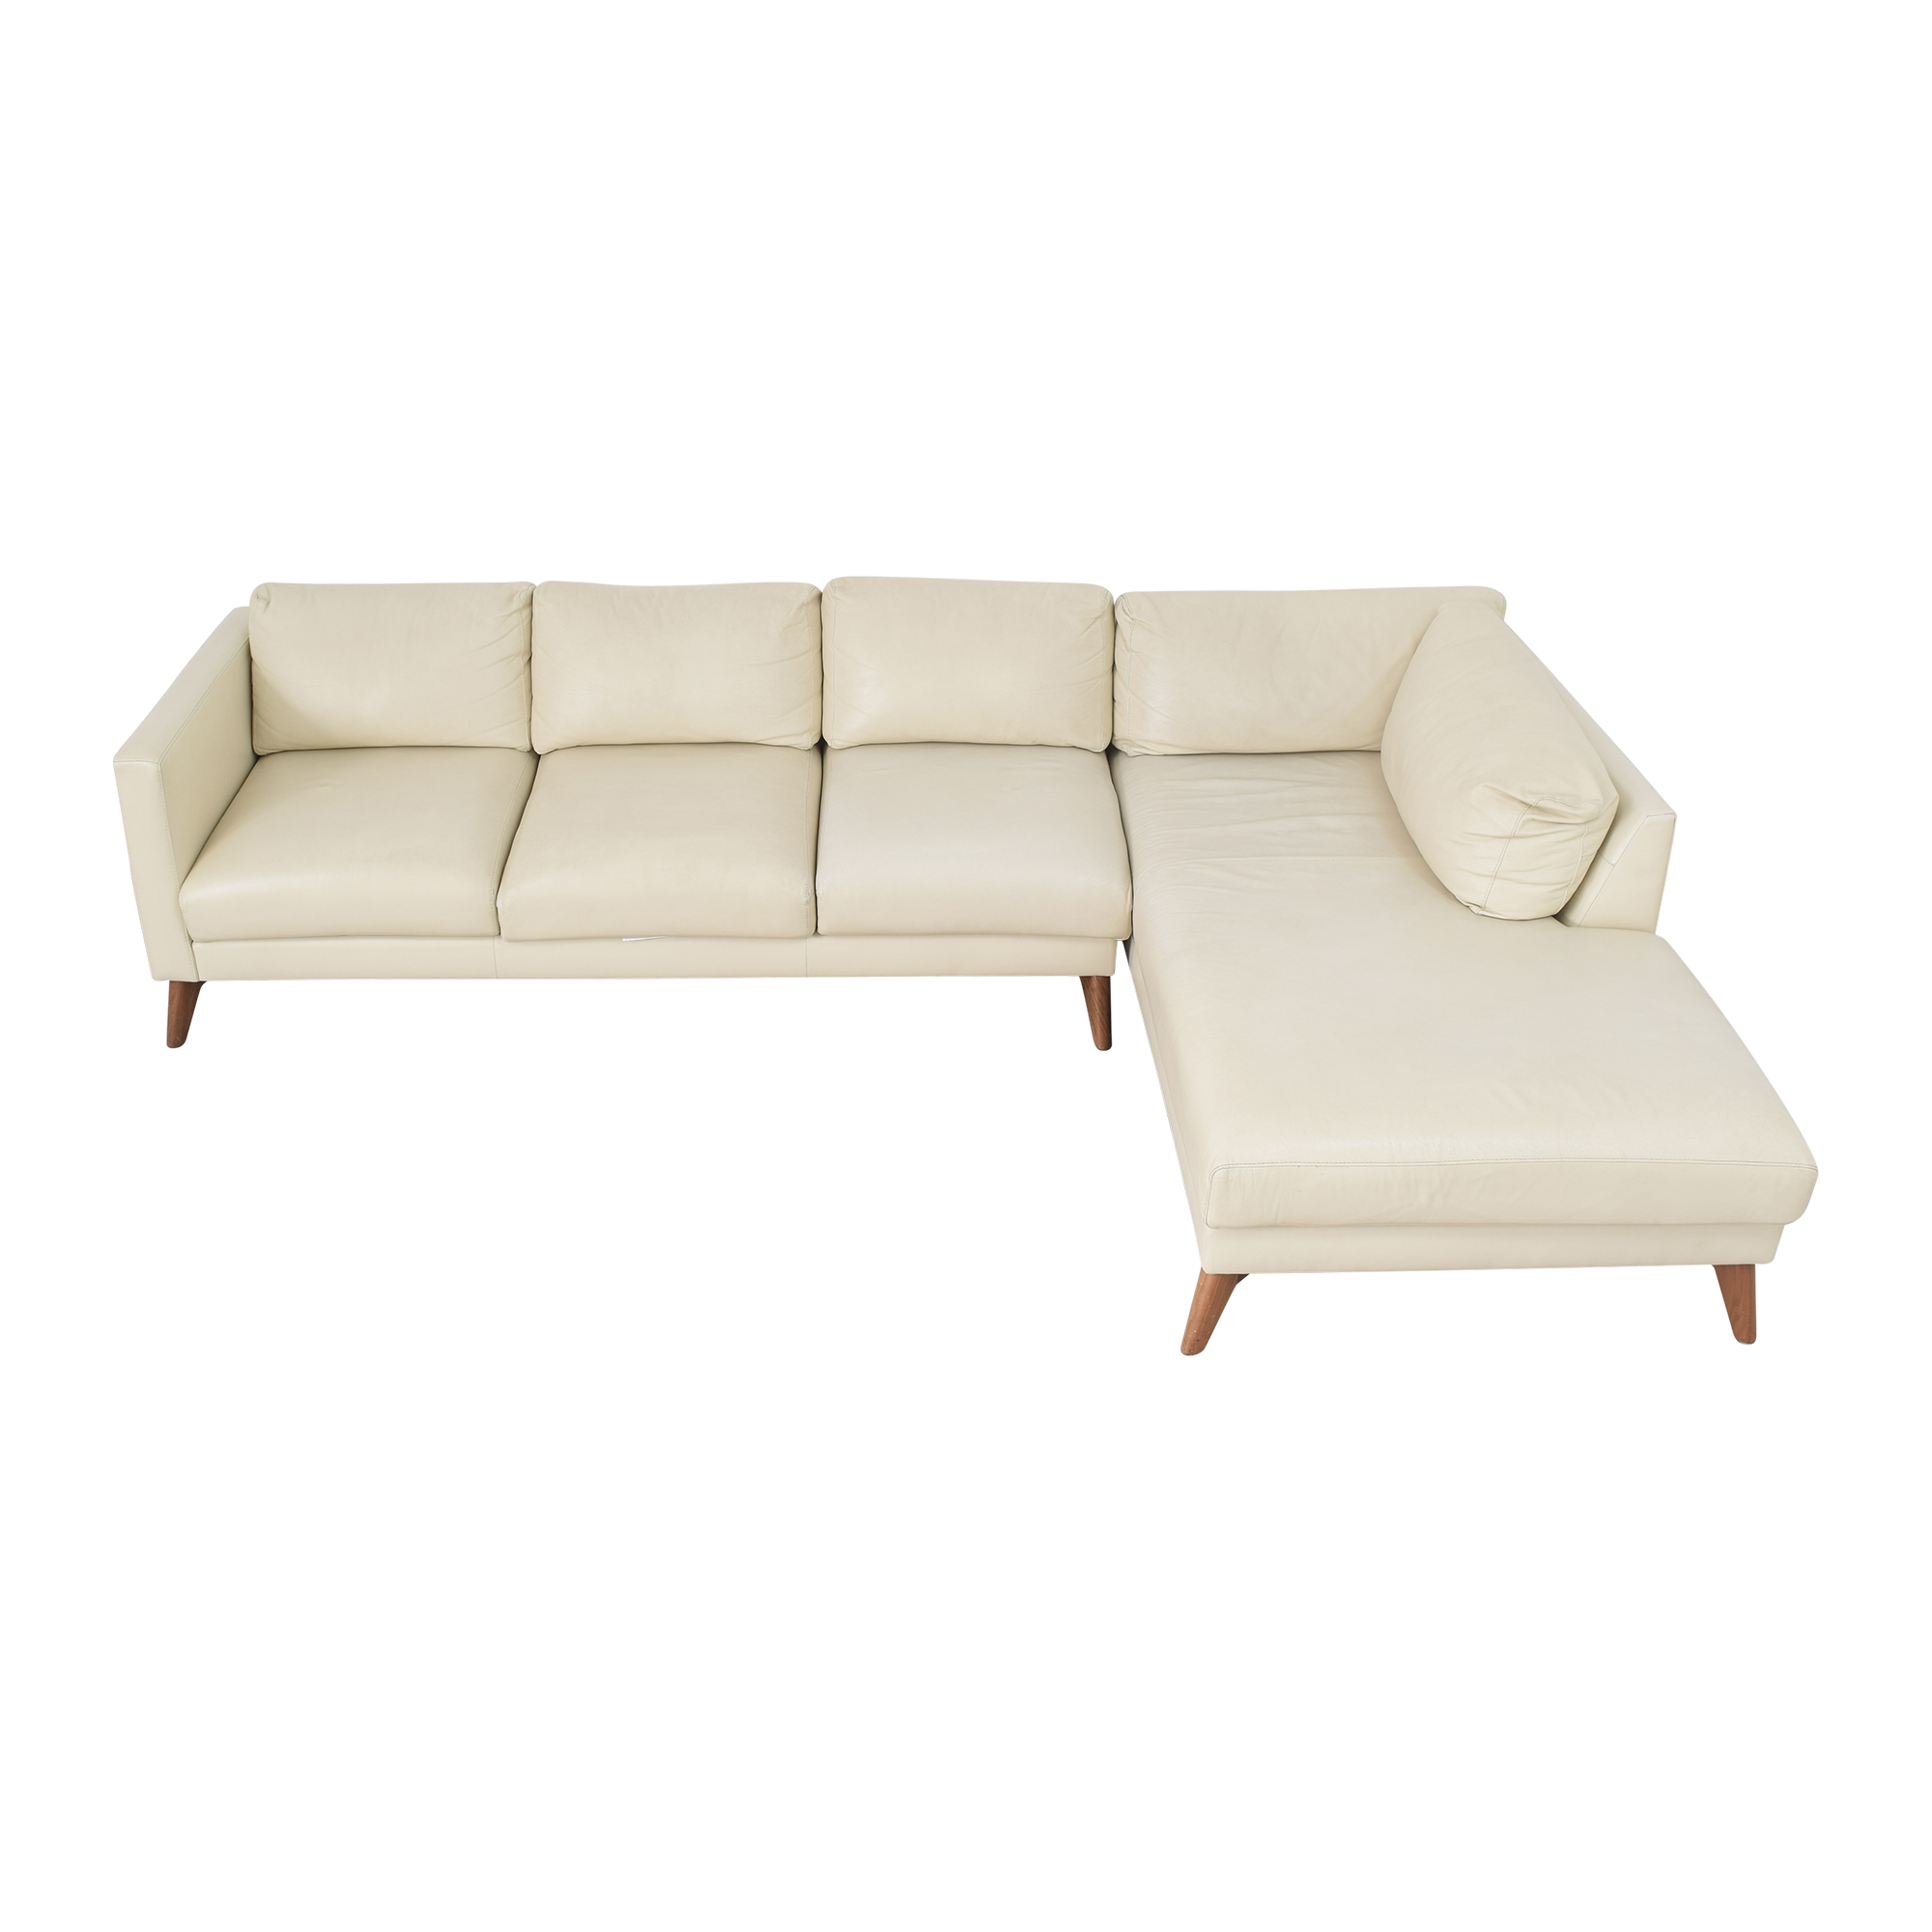 buy Elite Leather Company Elite Leather Company Burbank Chaise Sectional Sofa online